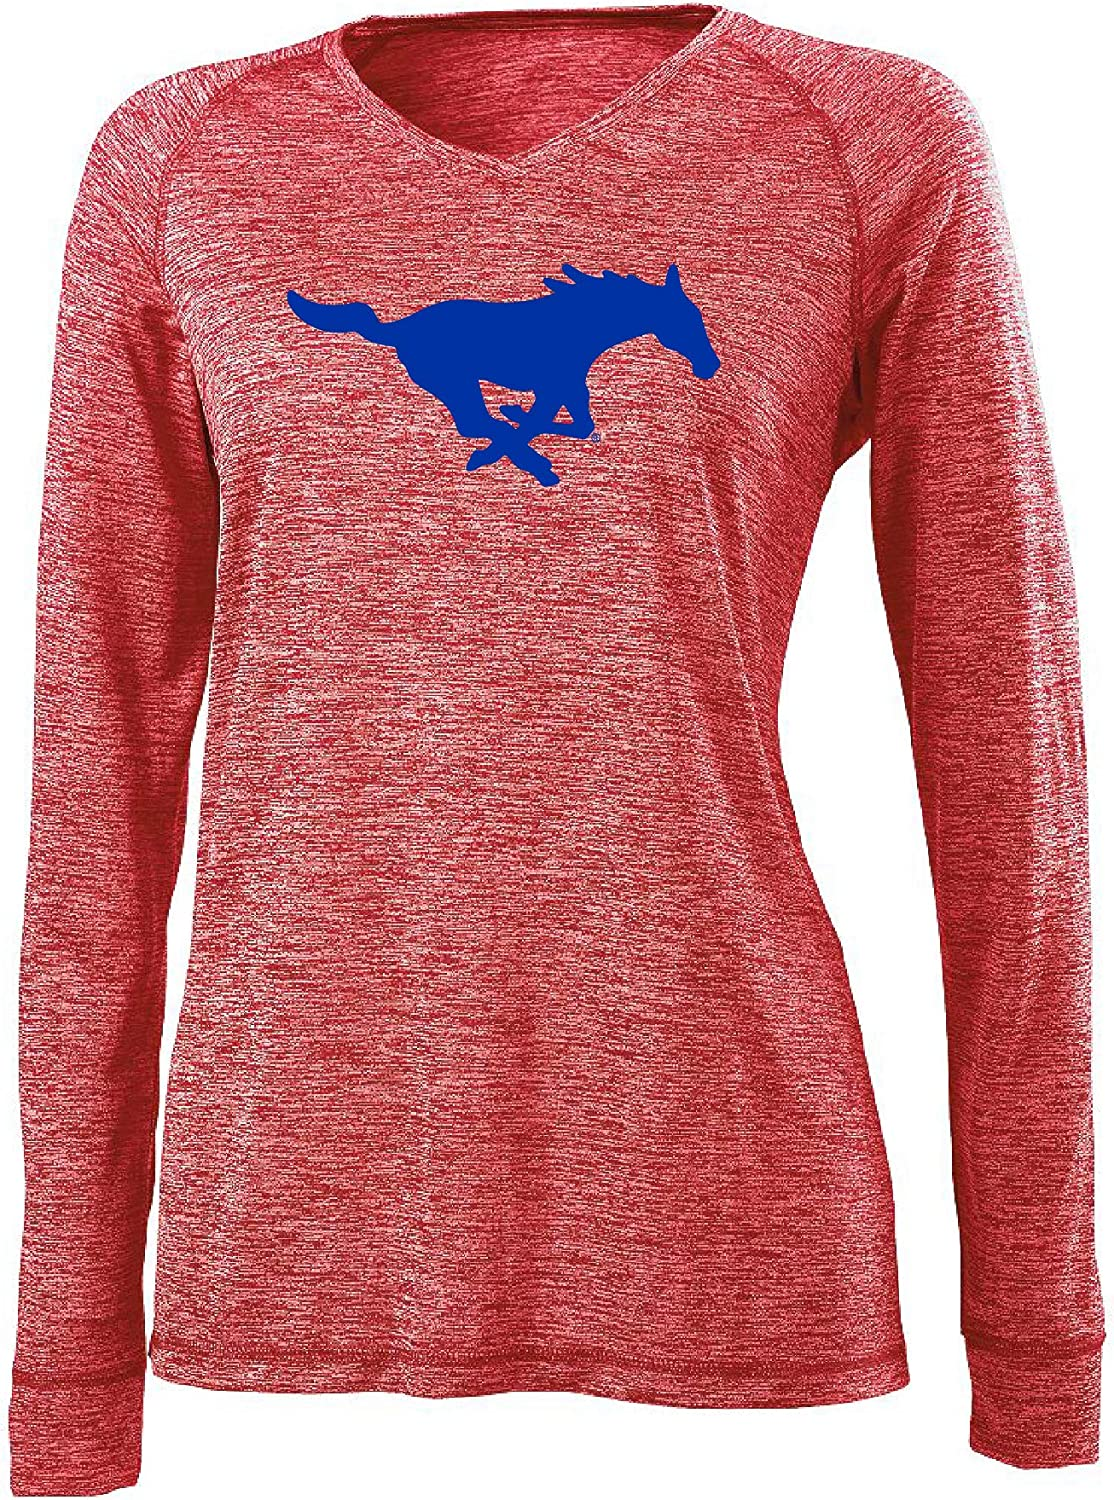 New products world's highest quality popular NCAA Utah Free shipping on posting reviews Utes Women's Electrify 2.0 Long V-neck T Sleeve